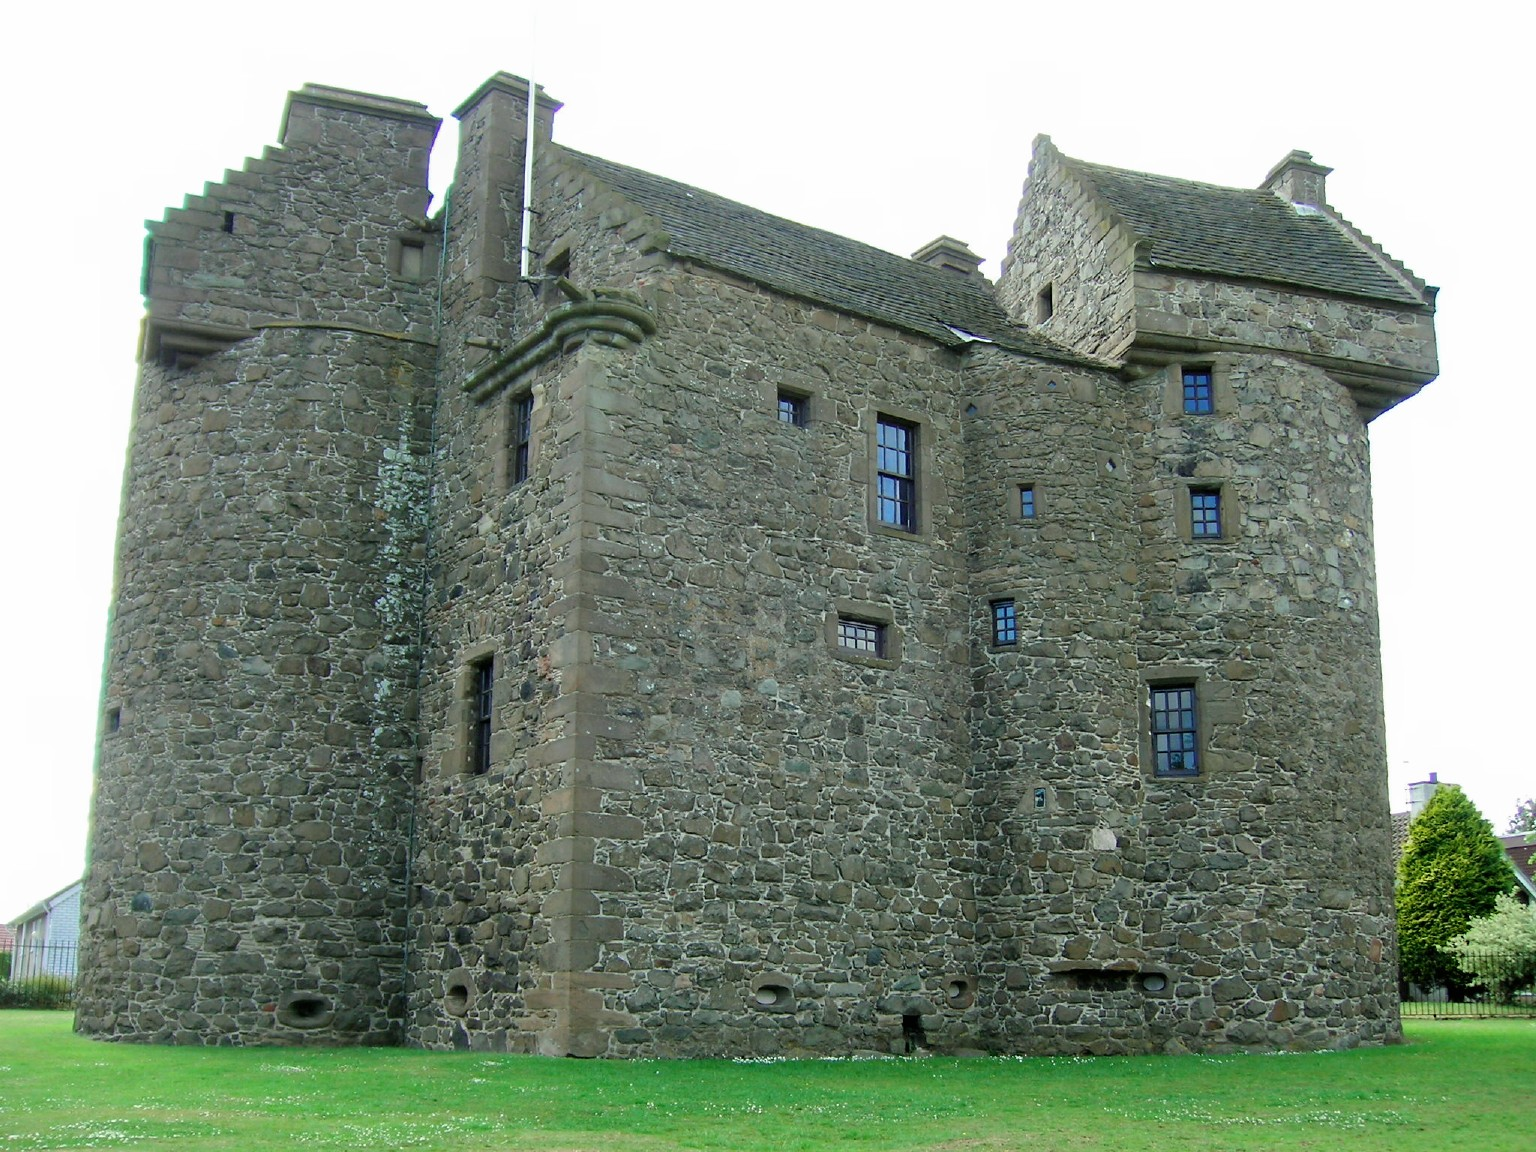 The sixteenth century Claypotts Castle, showing many of the features of the style.